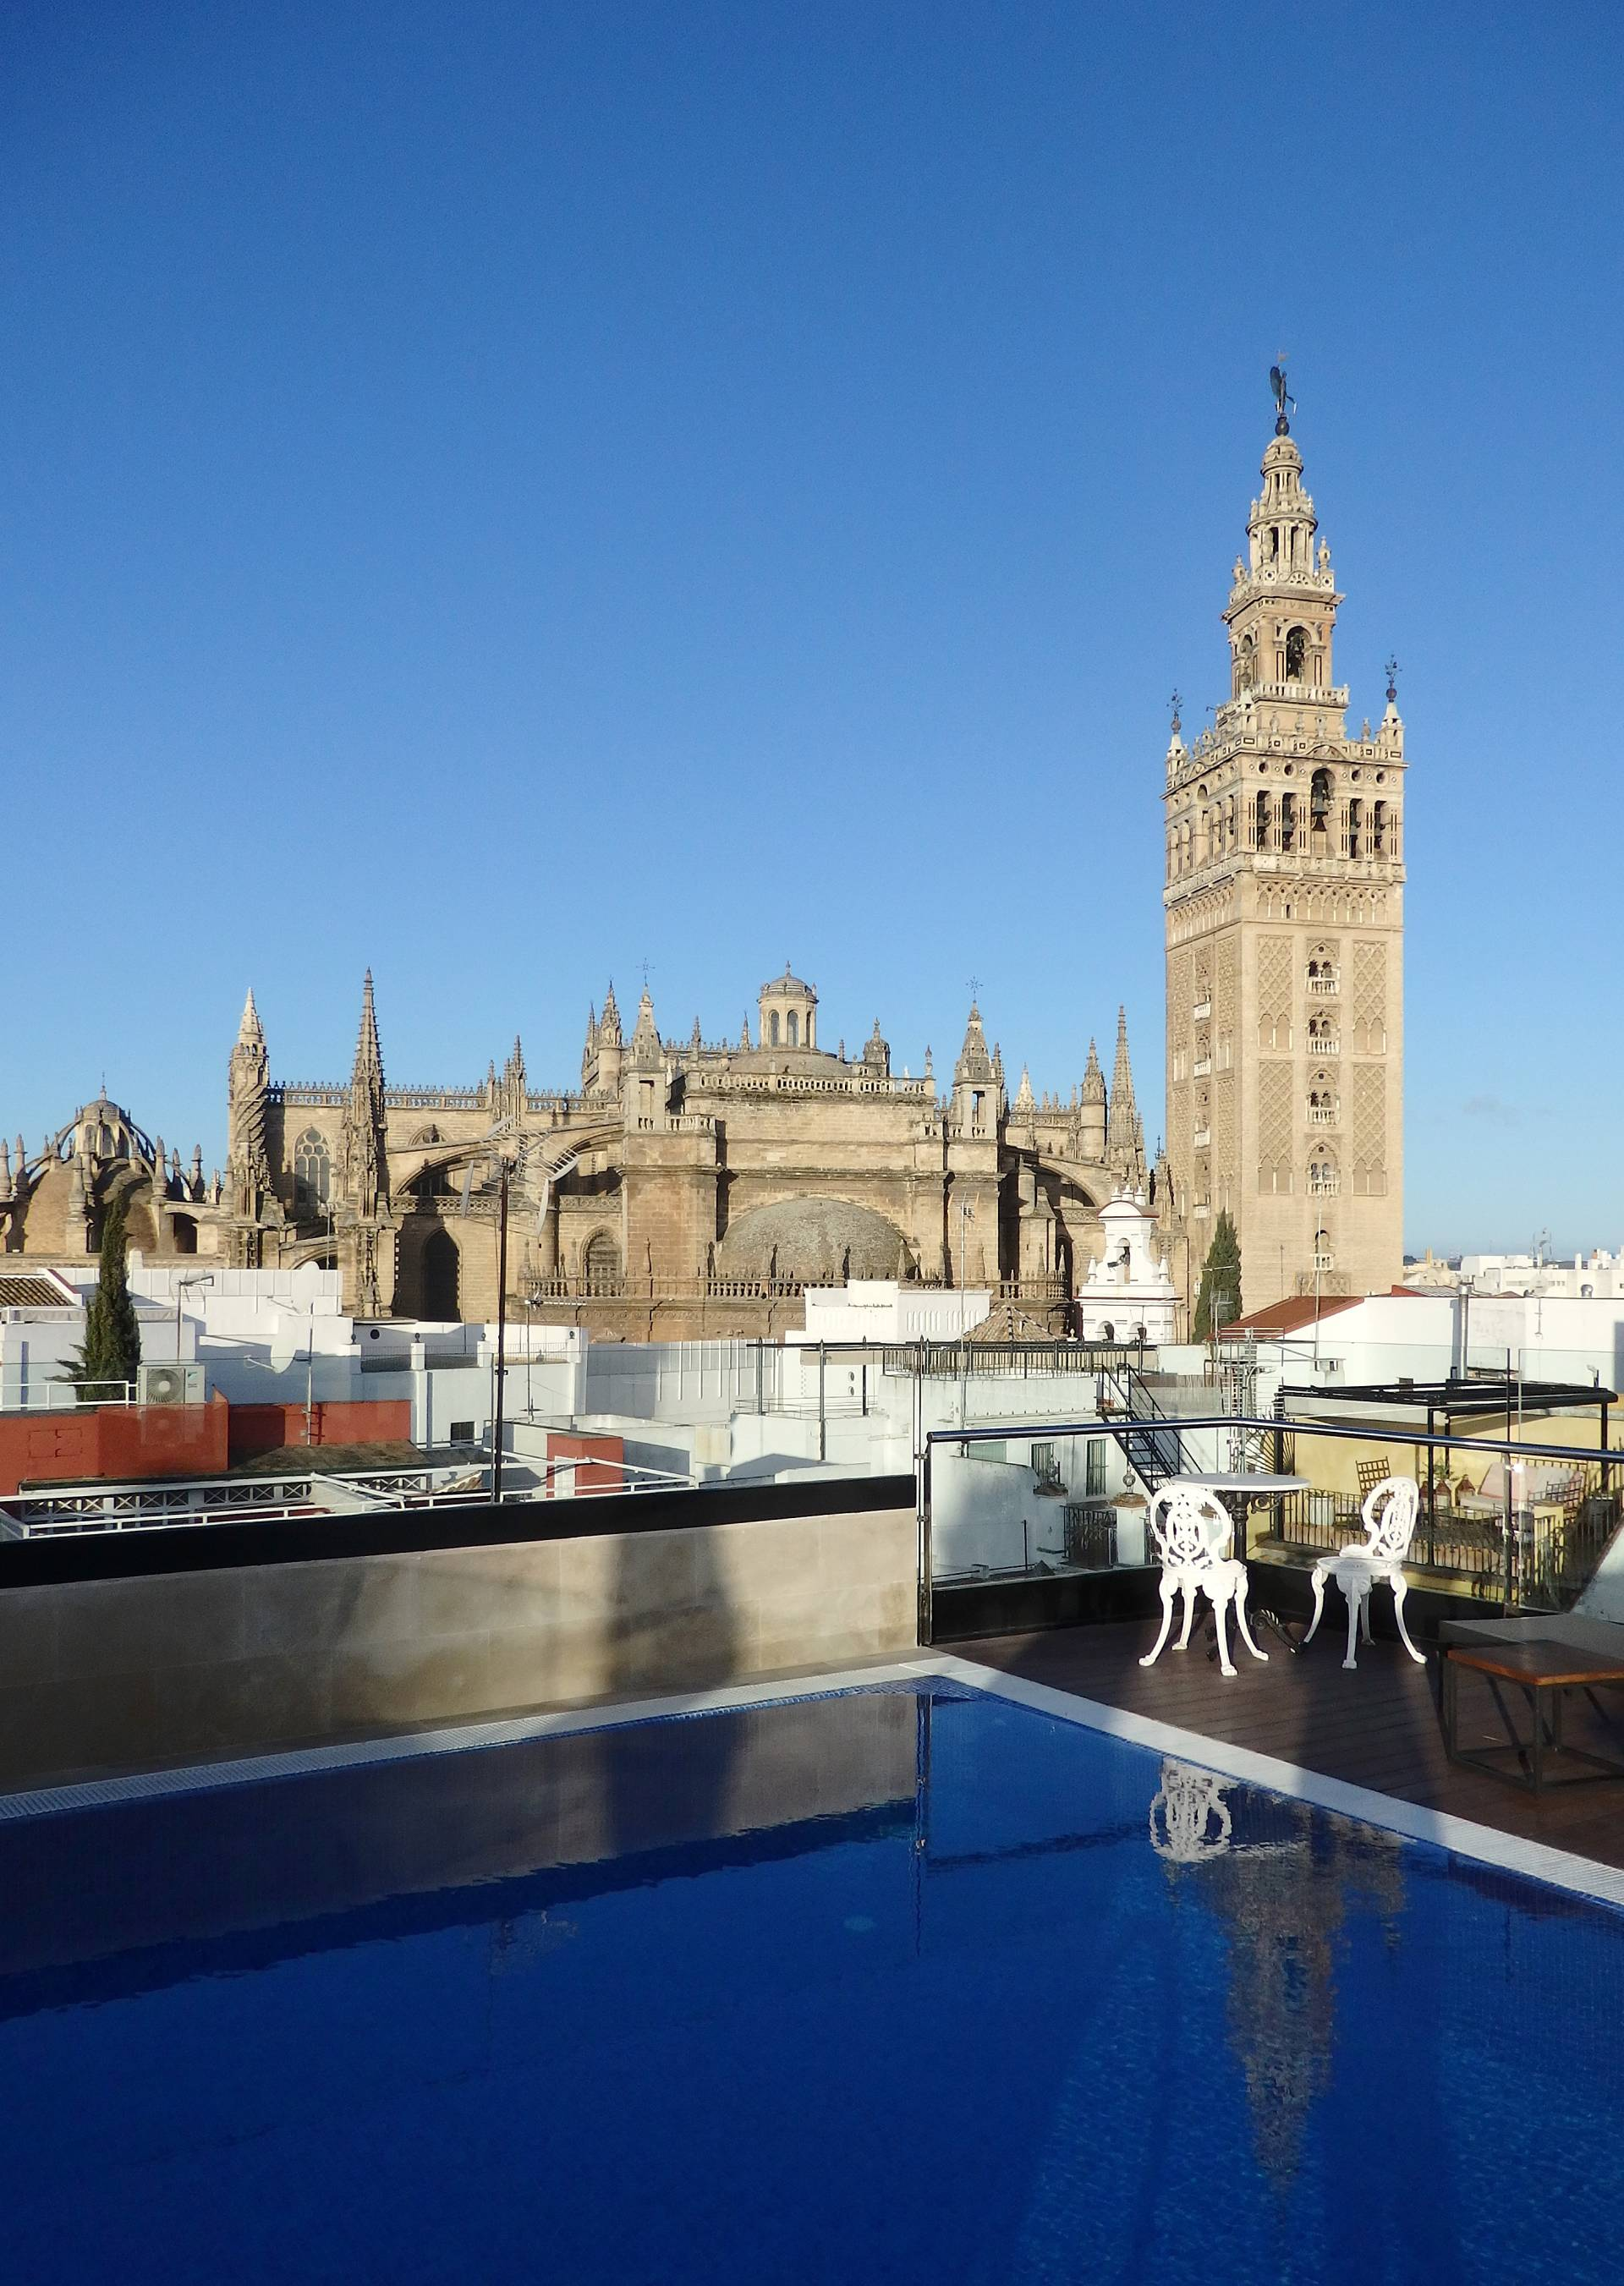 Hotel review hotel casa 1800 seville spain around the for Hoteles en sevilla con piscina climatizada